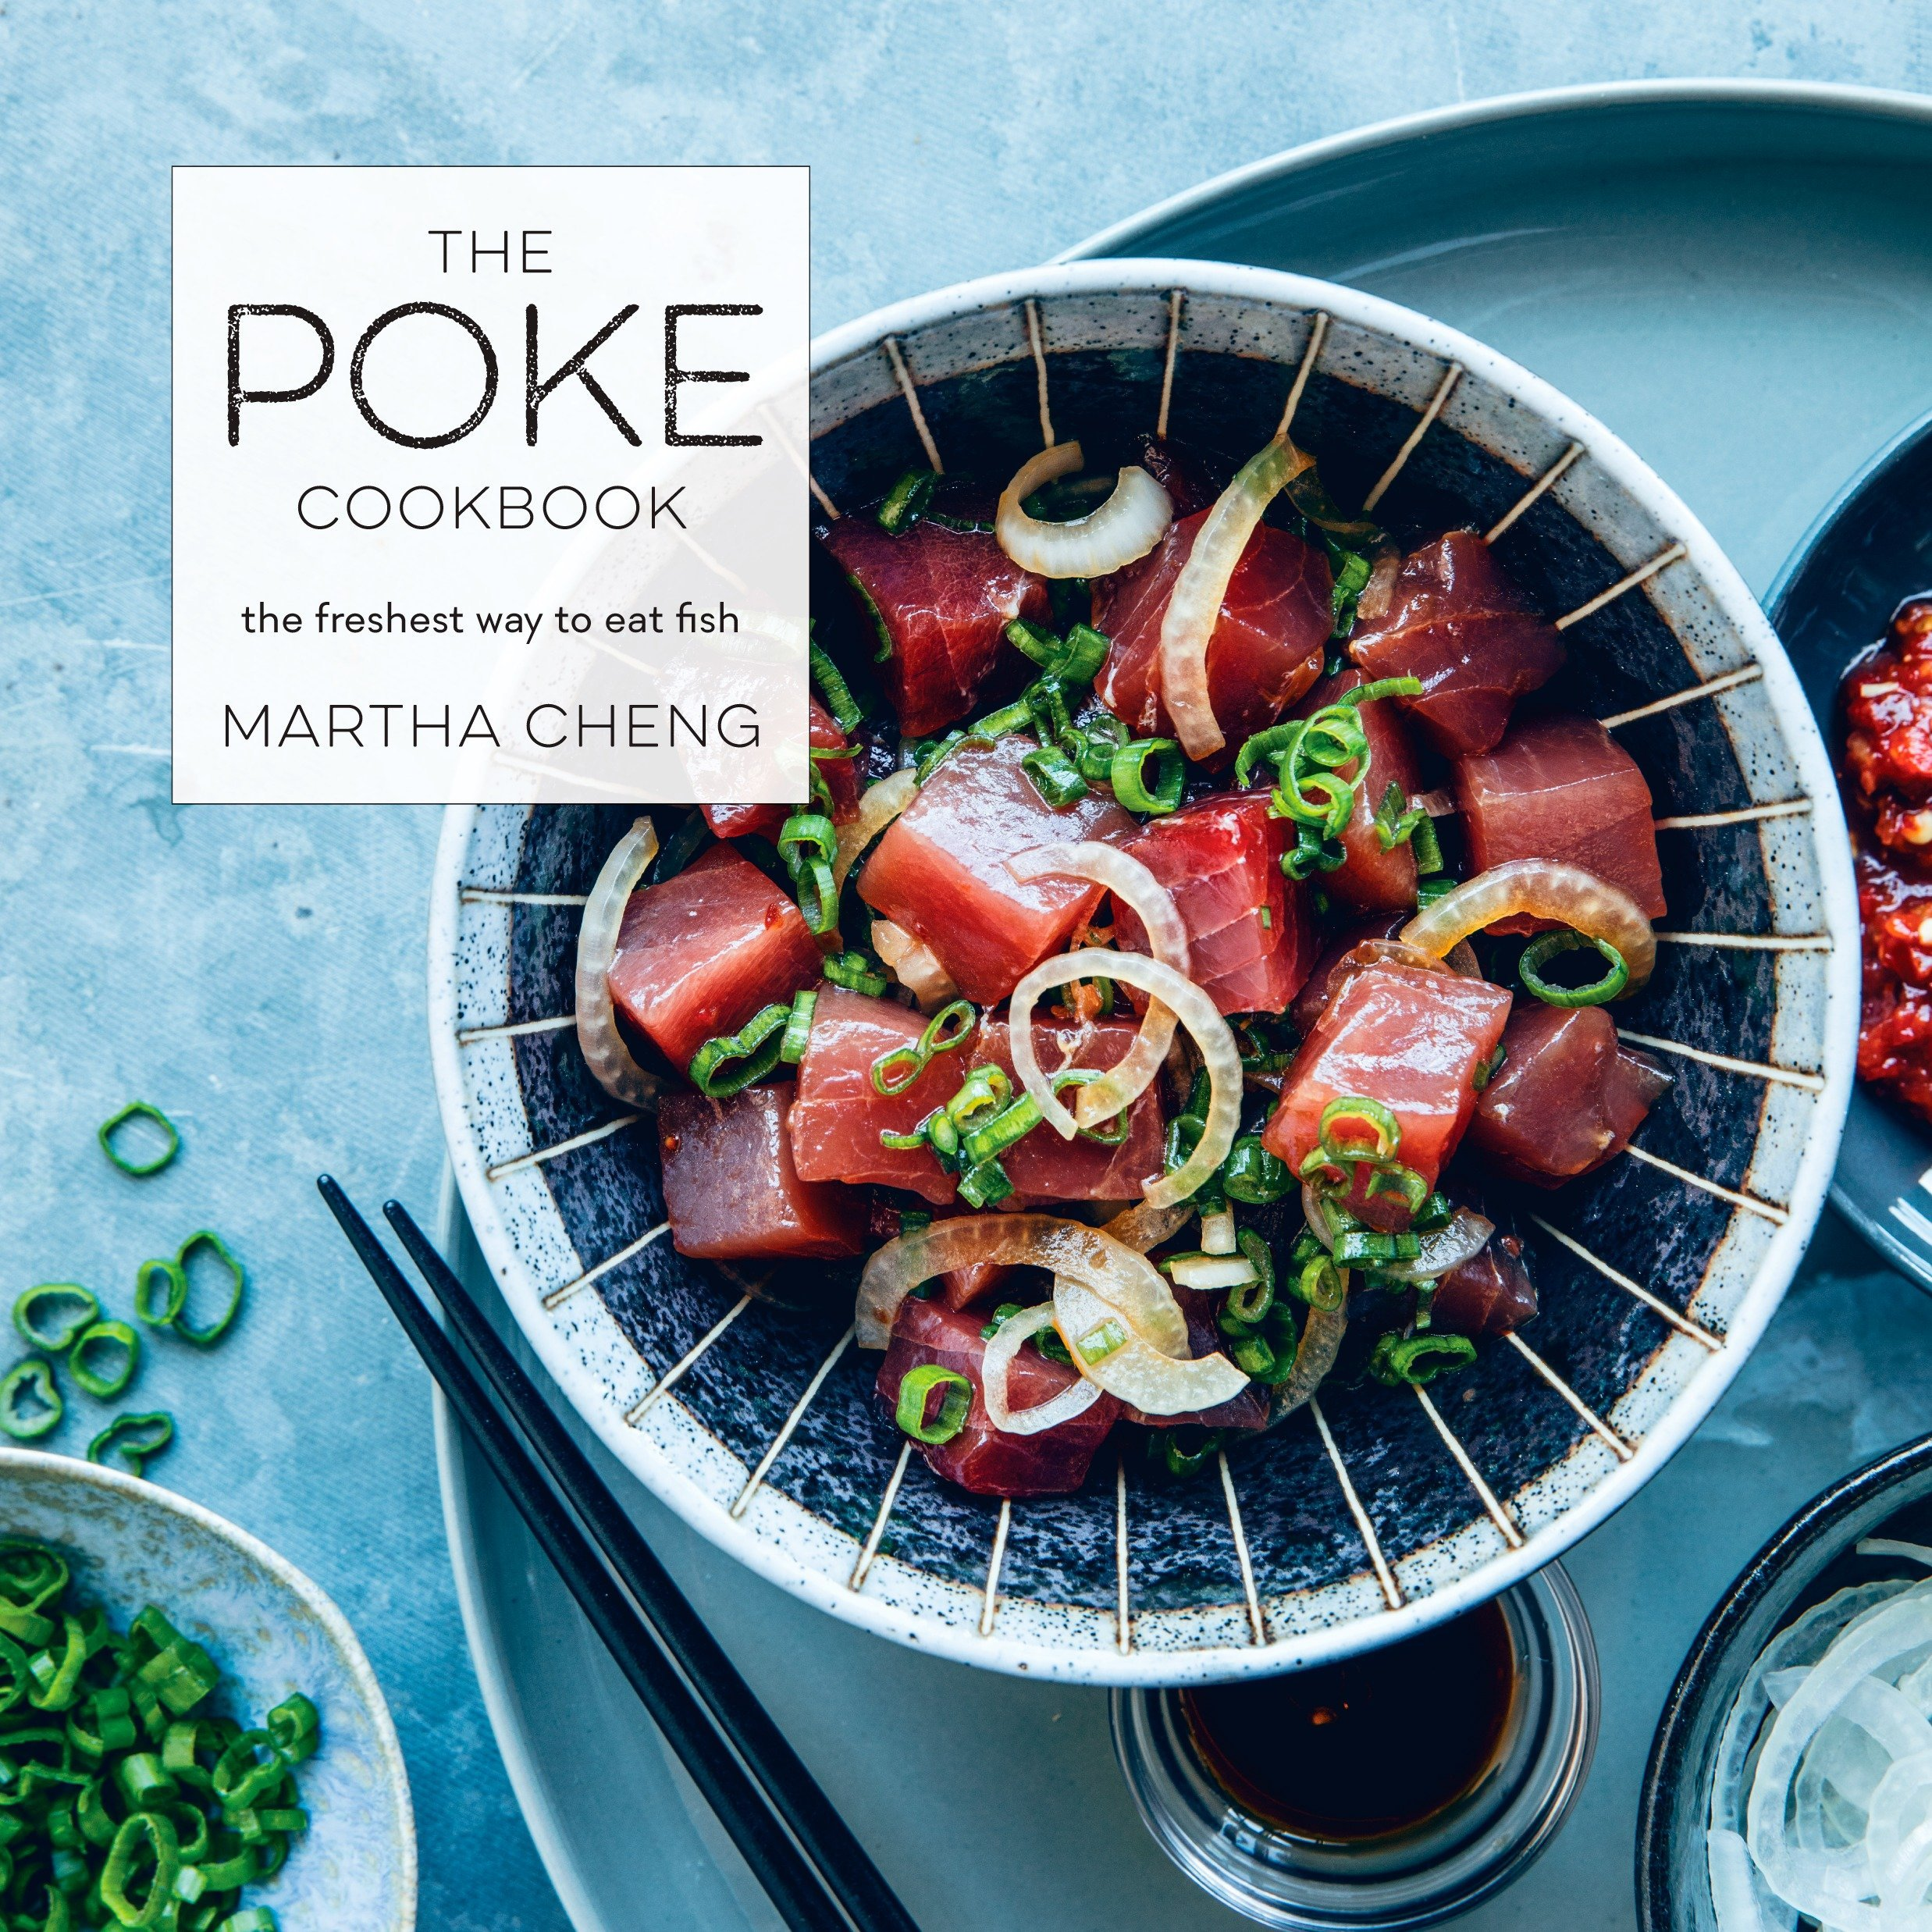 The Poke Cookbook: The Freshest Way to Eat Fish by CLARKSON POTTER (Image #1)